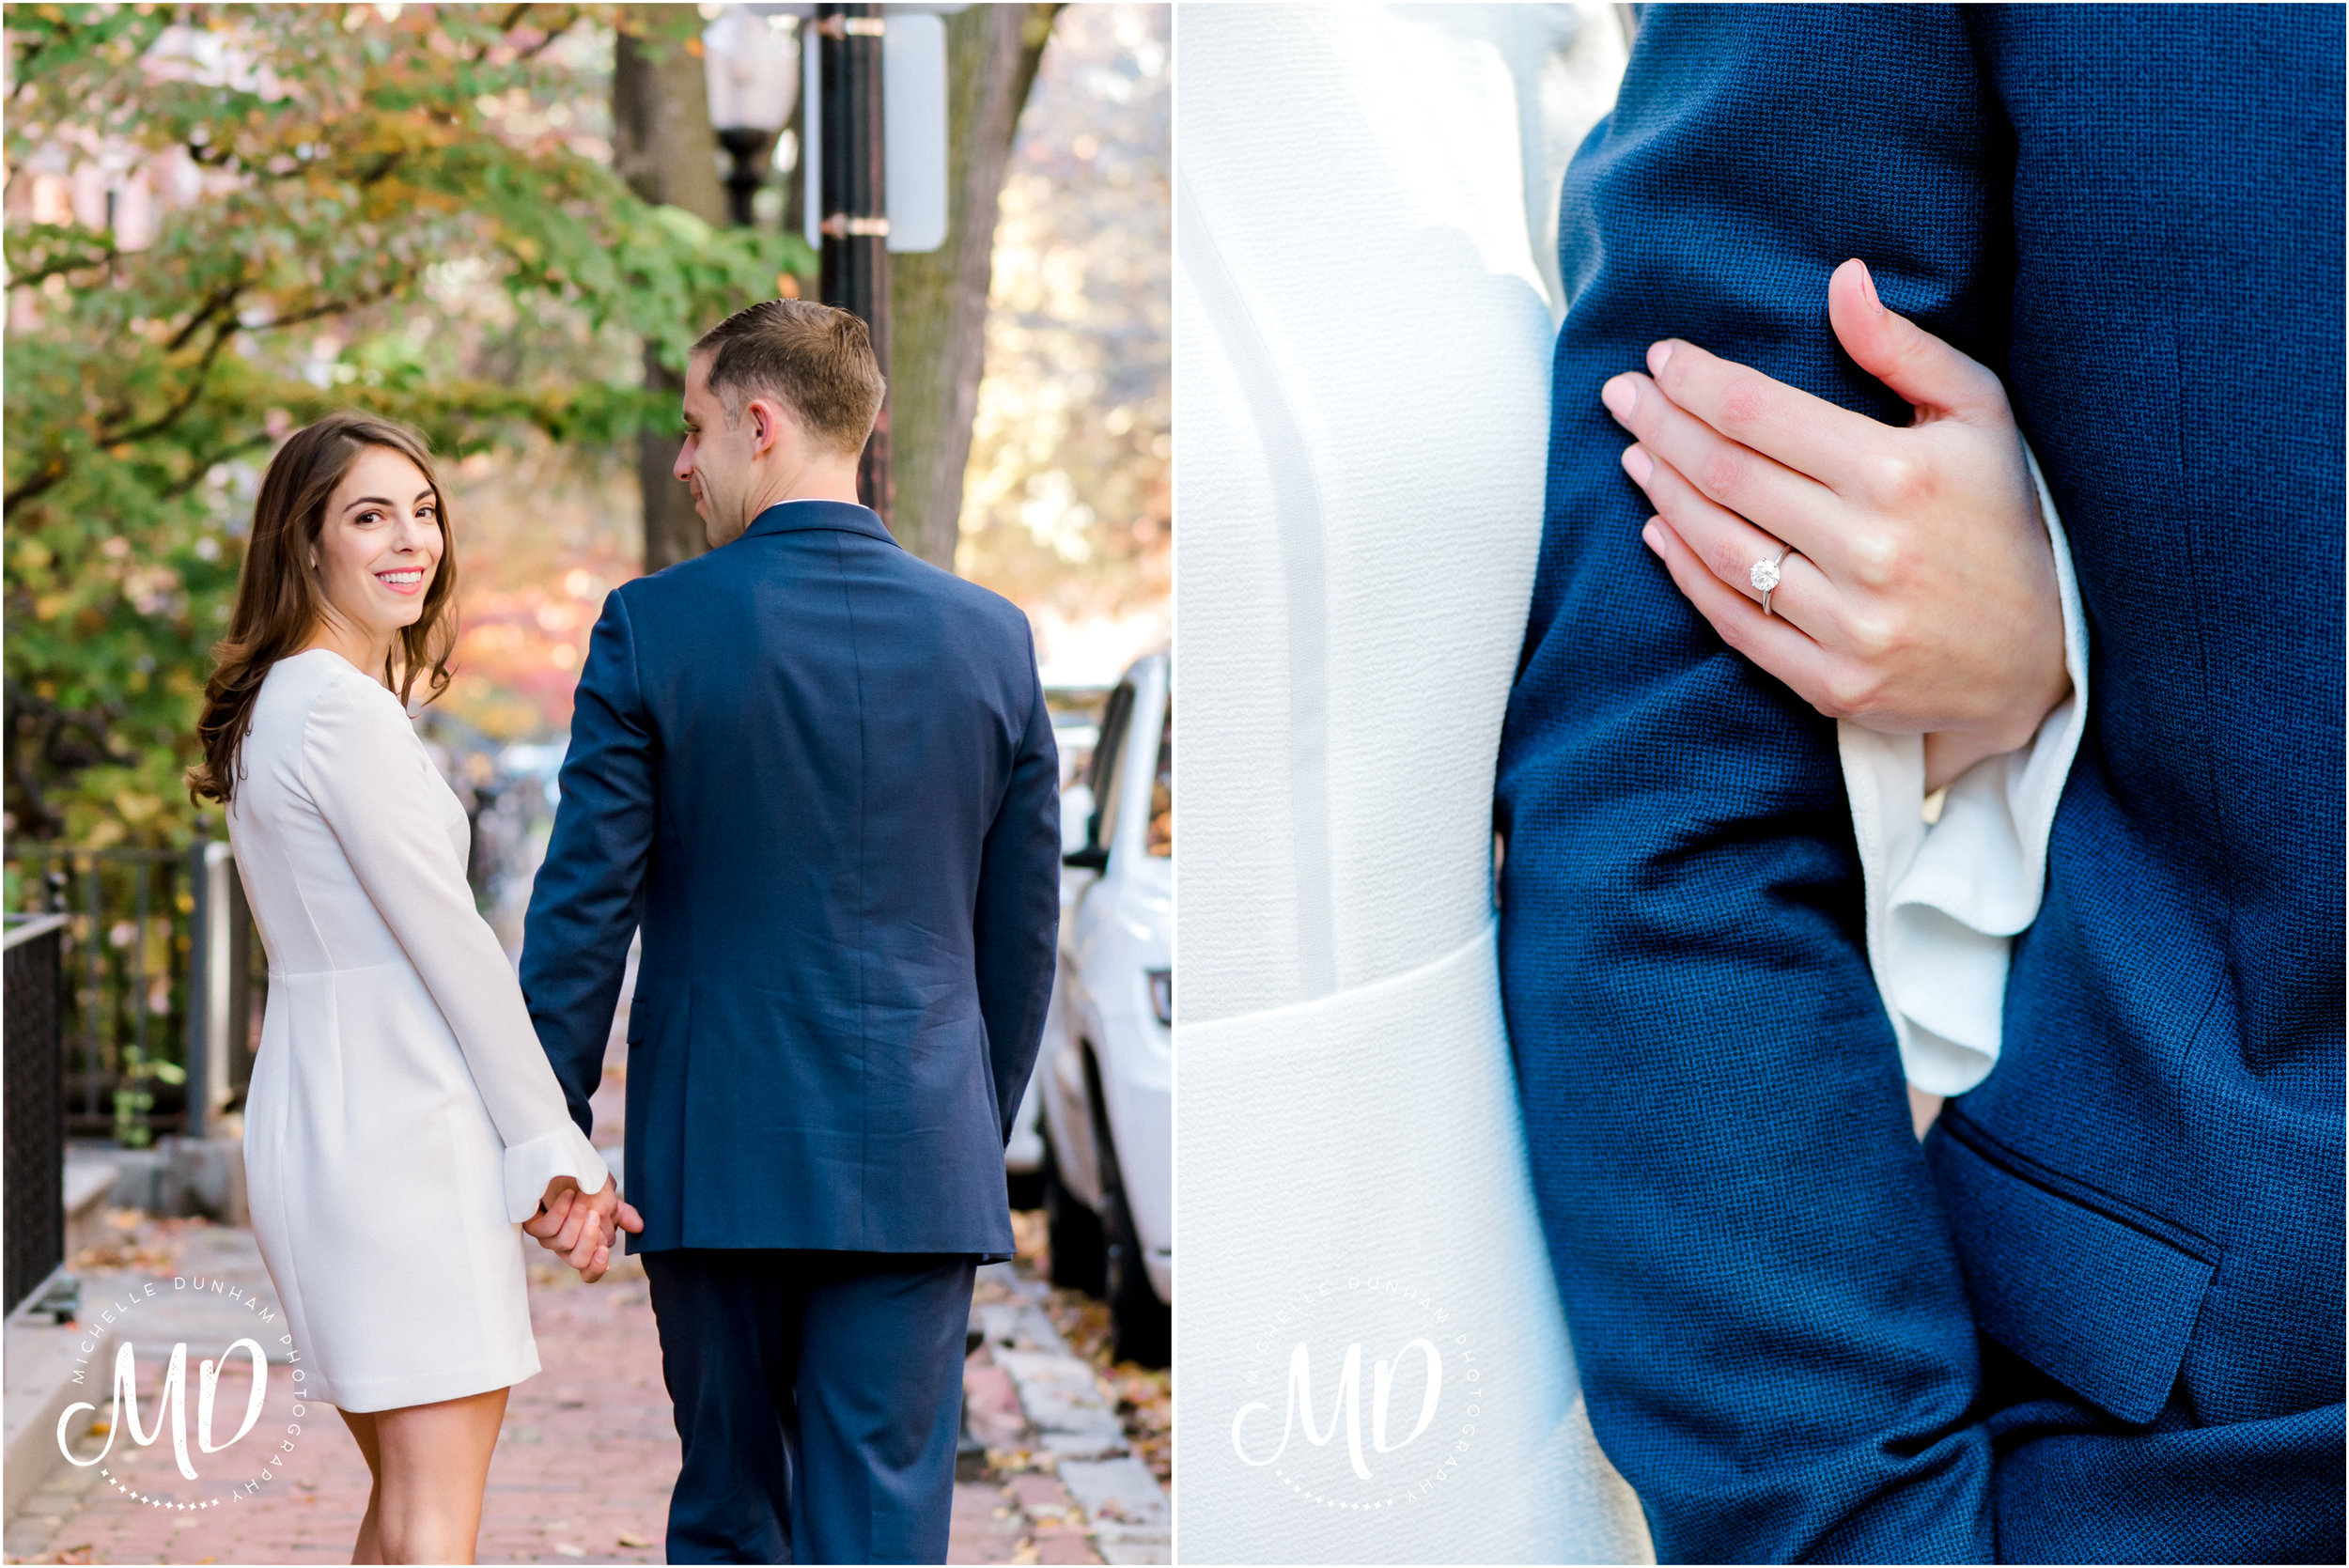 Michelle-Dunham-Photography-Engagement-South-End-Boston-3.jpg